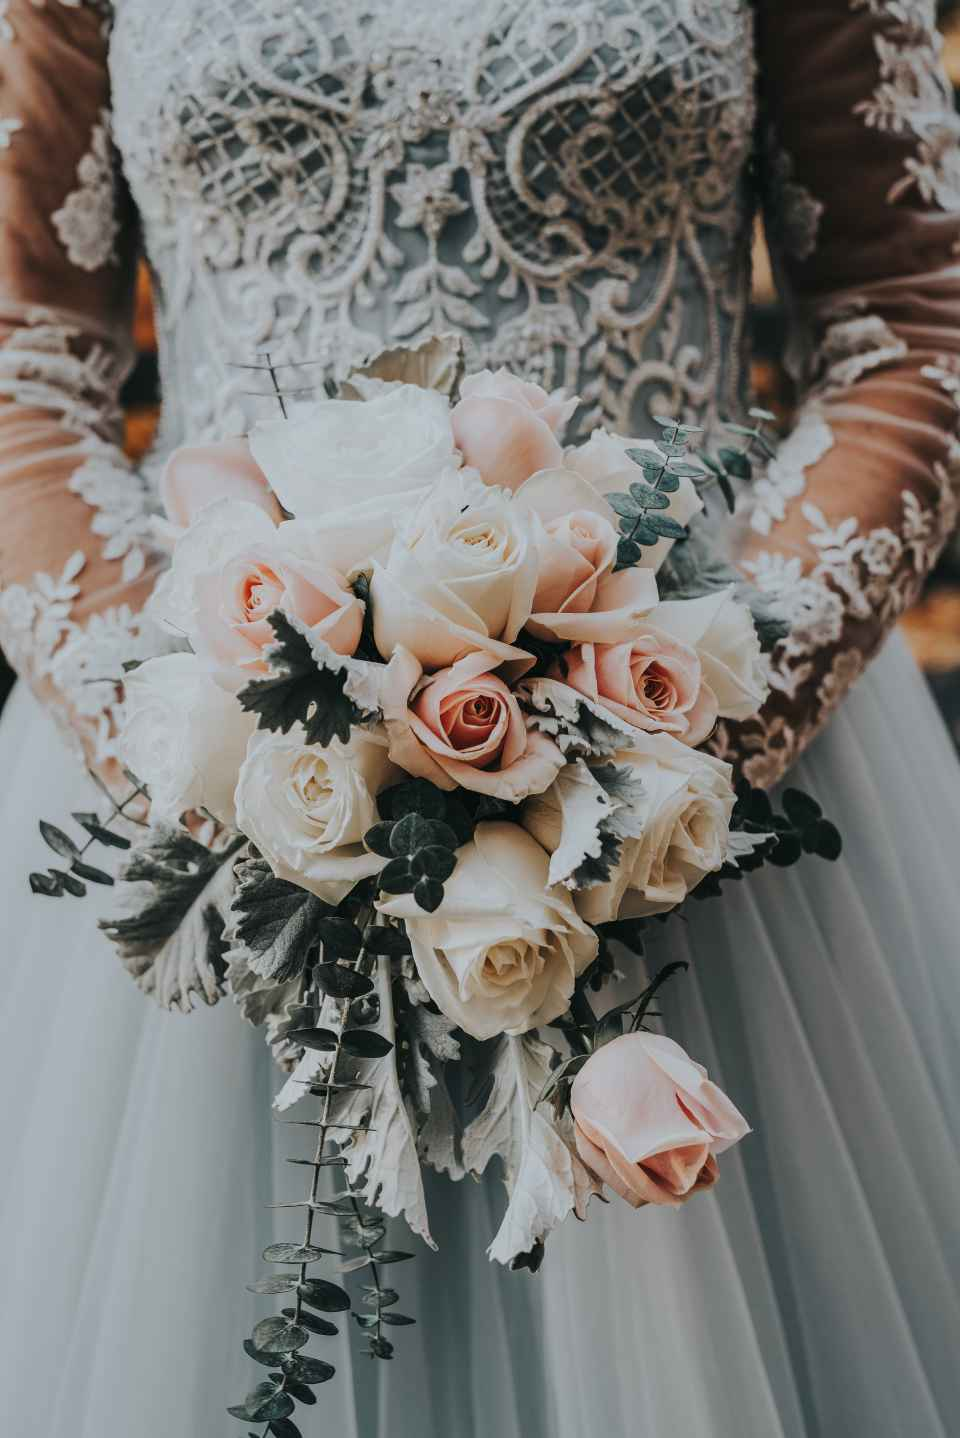 Yes, it is cheaper to make your wedding bouquets than hiring a wedding florist to do the same.